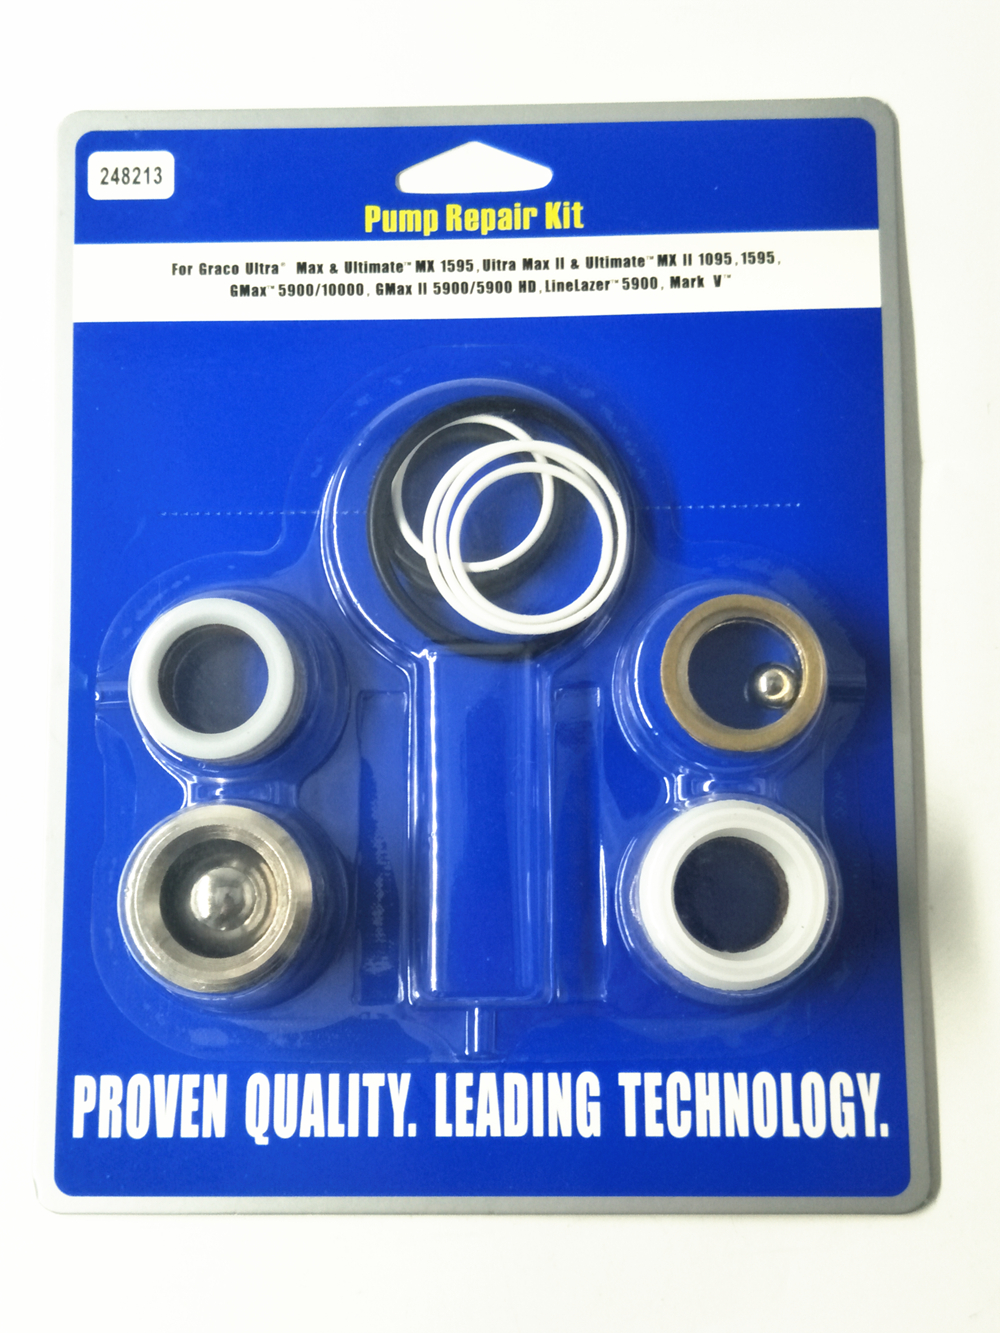 NEW Aftermarket Pump Repair Packing Kit 248213 For Graco Sprayer 1095 1595 5900<br>